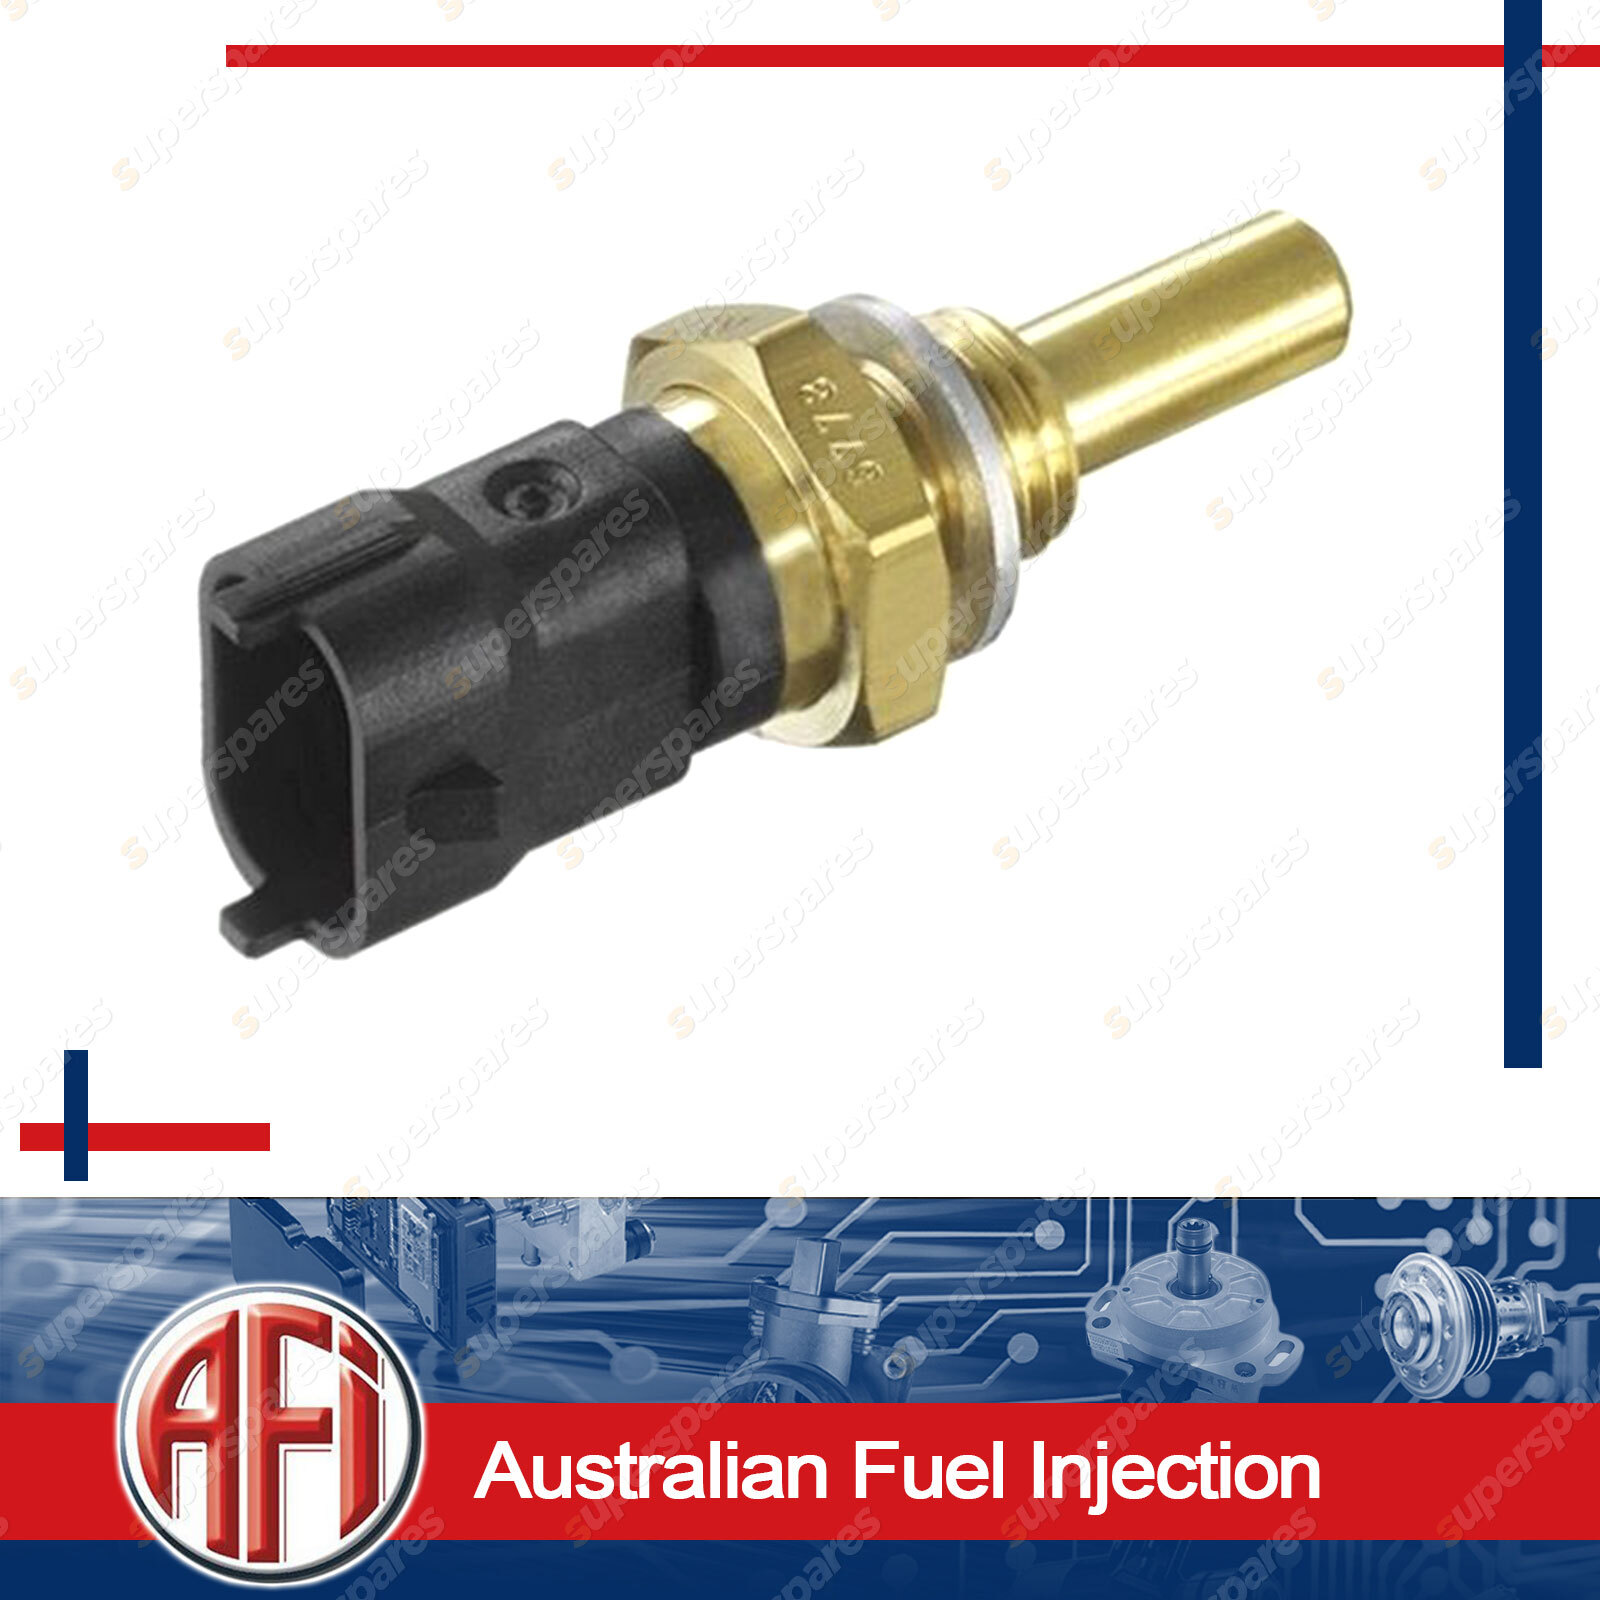 hight resolution of sku afi engine c1802l2644